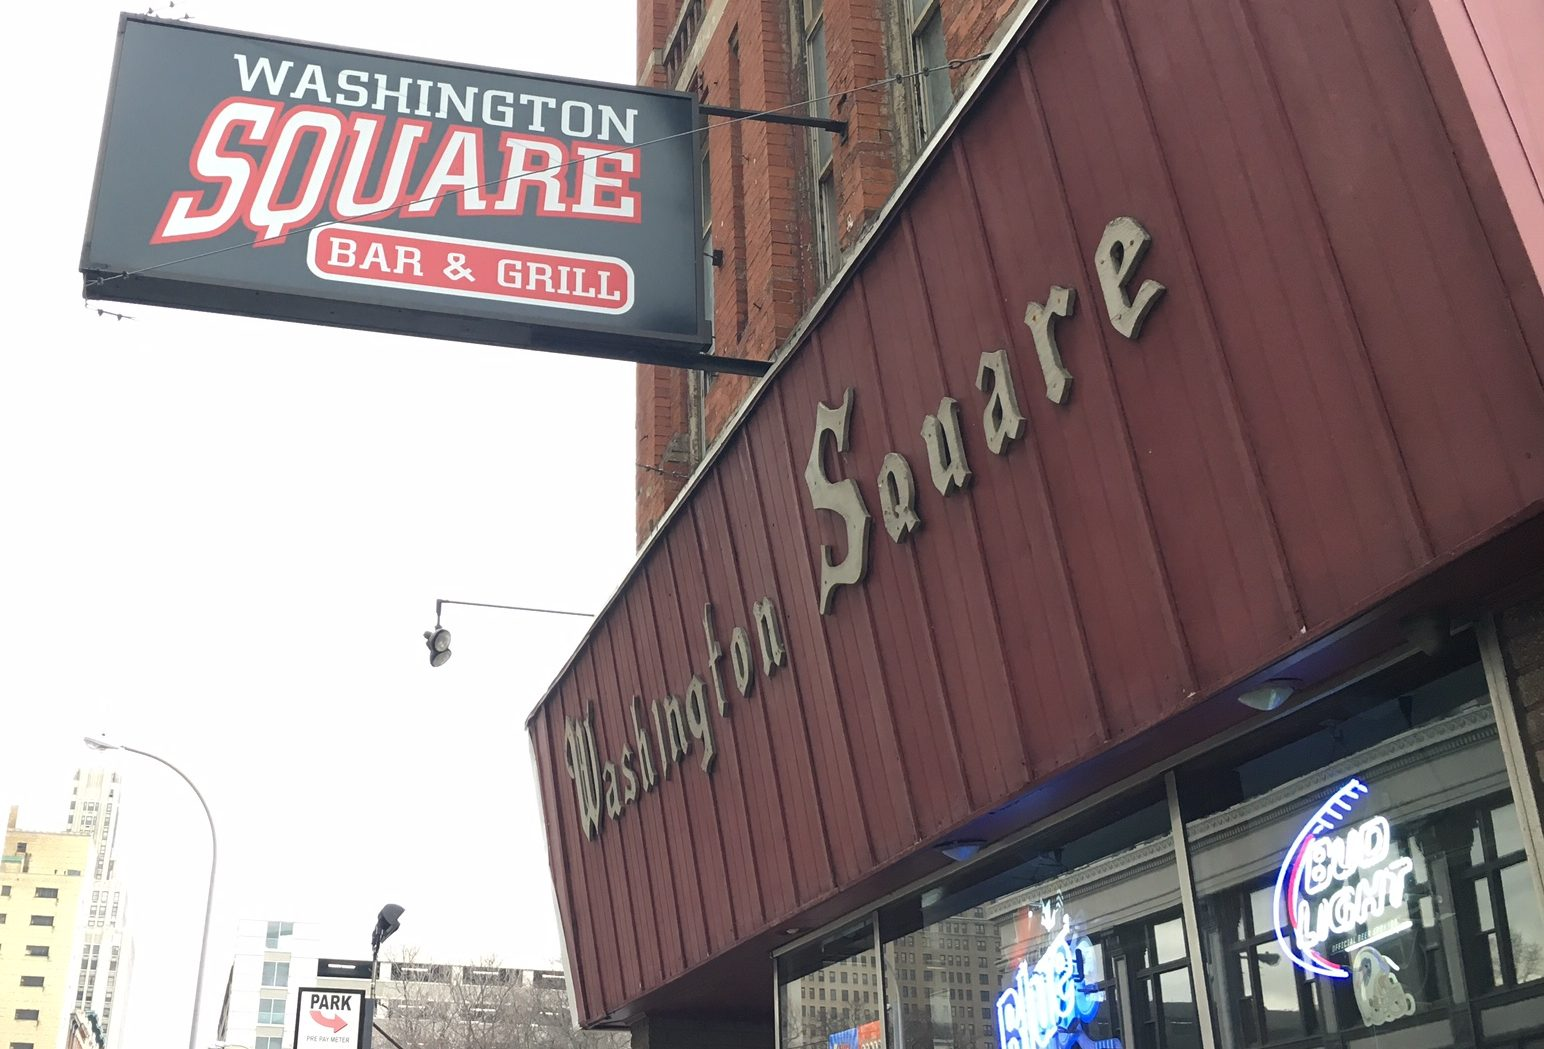 Buffalo's Washington Square continues to be a classic downtown sports stop just steps away from Coca-Cola Field.